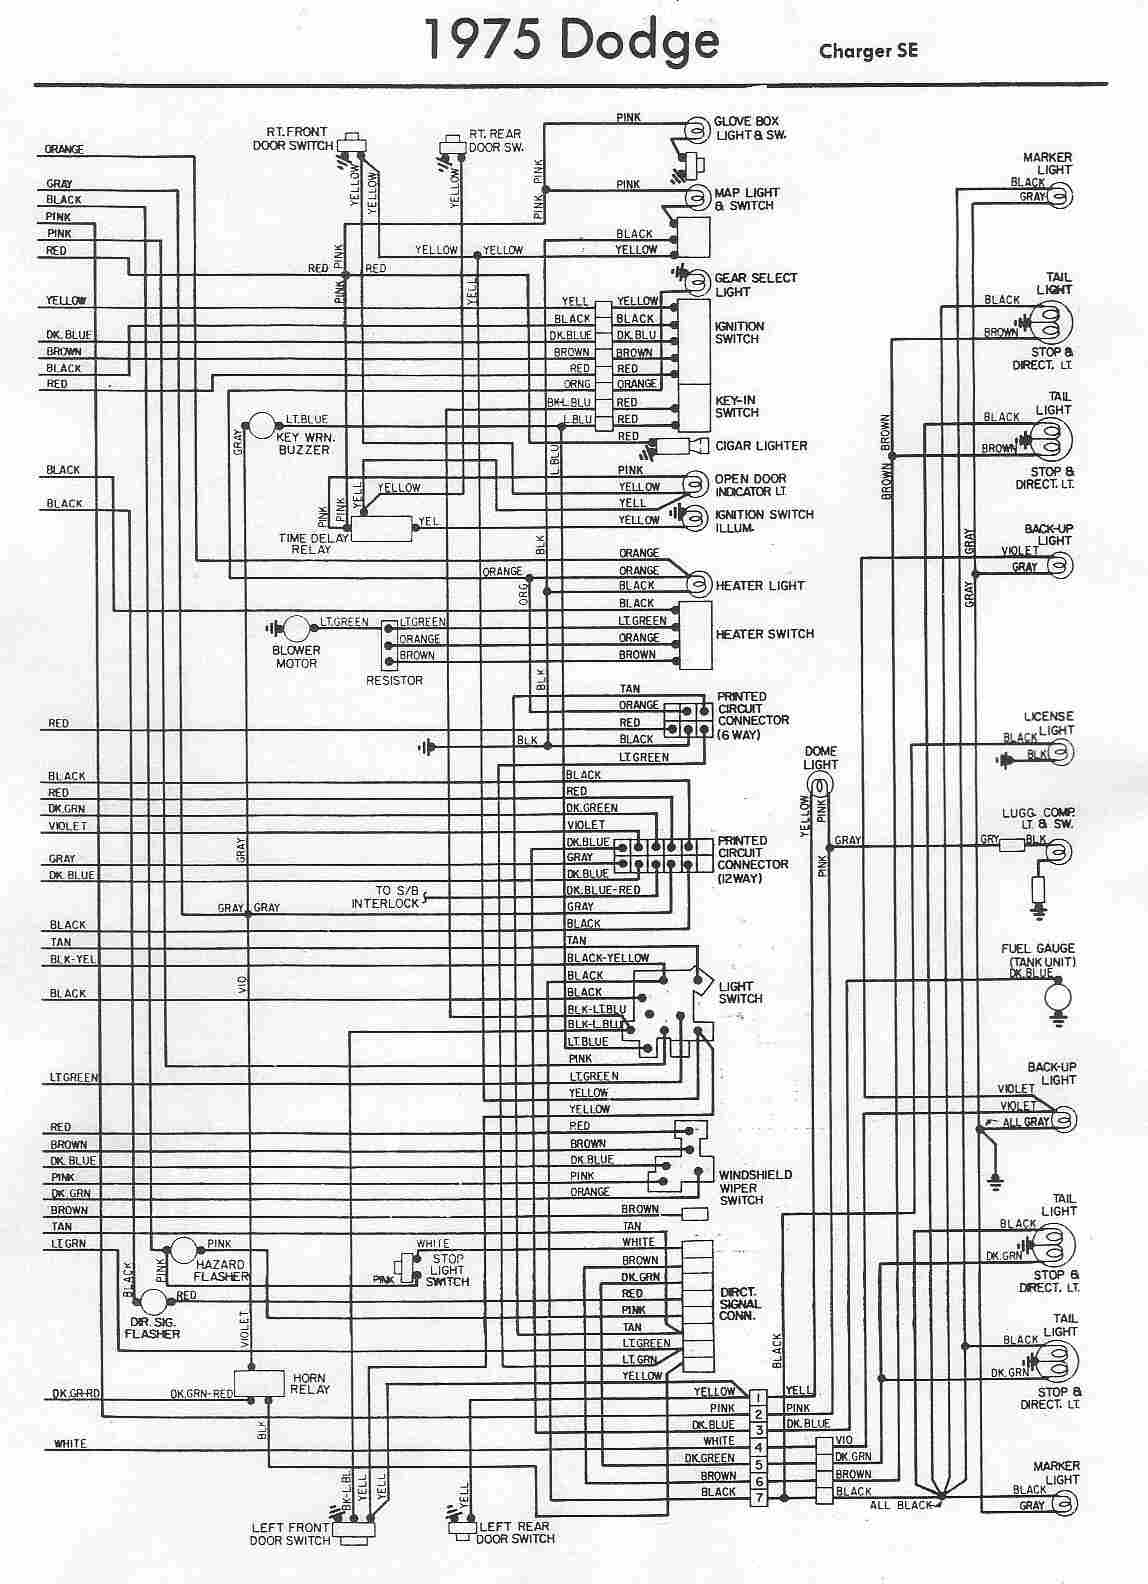 1973 dodge wiring diagram blog wiring diagram 1973 dodge truck wiring diagram [ 1148 x 1584 Pixel ]